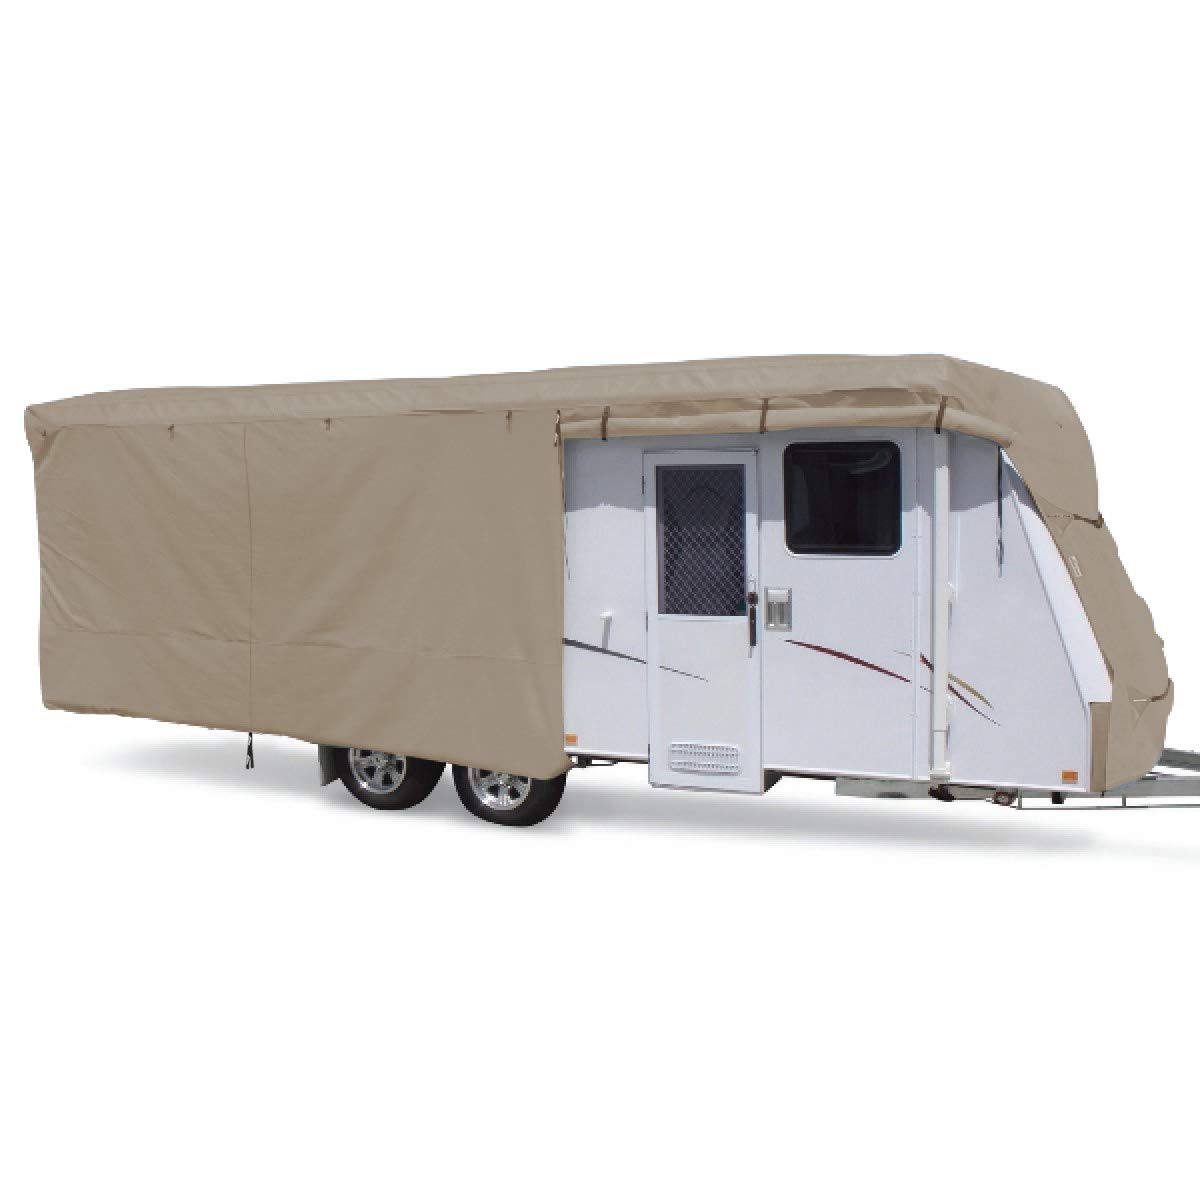 SUMMATES Travel Trailer Cover RV Cover,Color Gray,Beige,160g SSFS 4 Layer Polypropylene Fabric,fits Most Sizes (Beige, 20-22 Feet) by SUMMATES